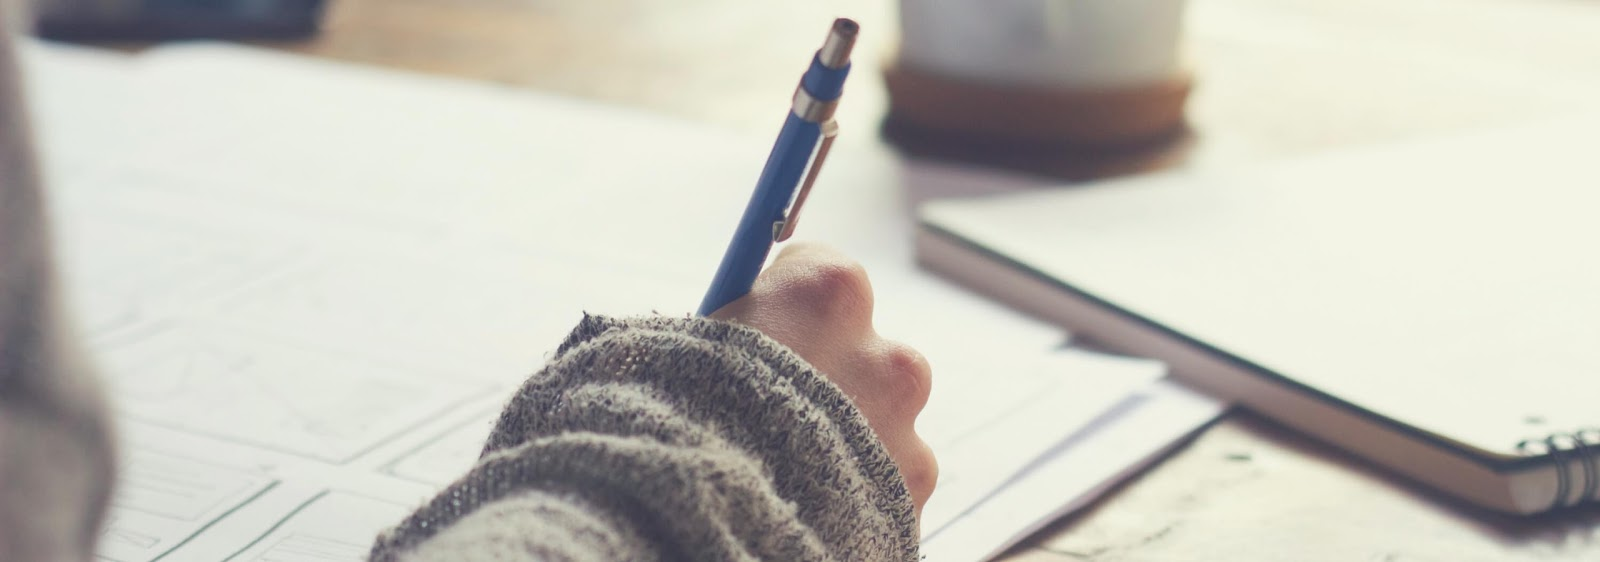 A woman's hand holds a pen to a pile of papers on a desk. A coffee cup and a notebook is blurred in the background.